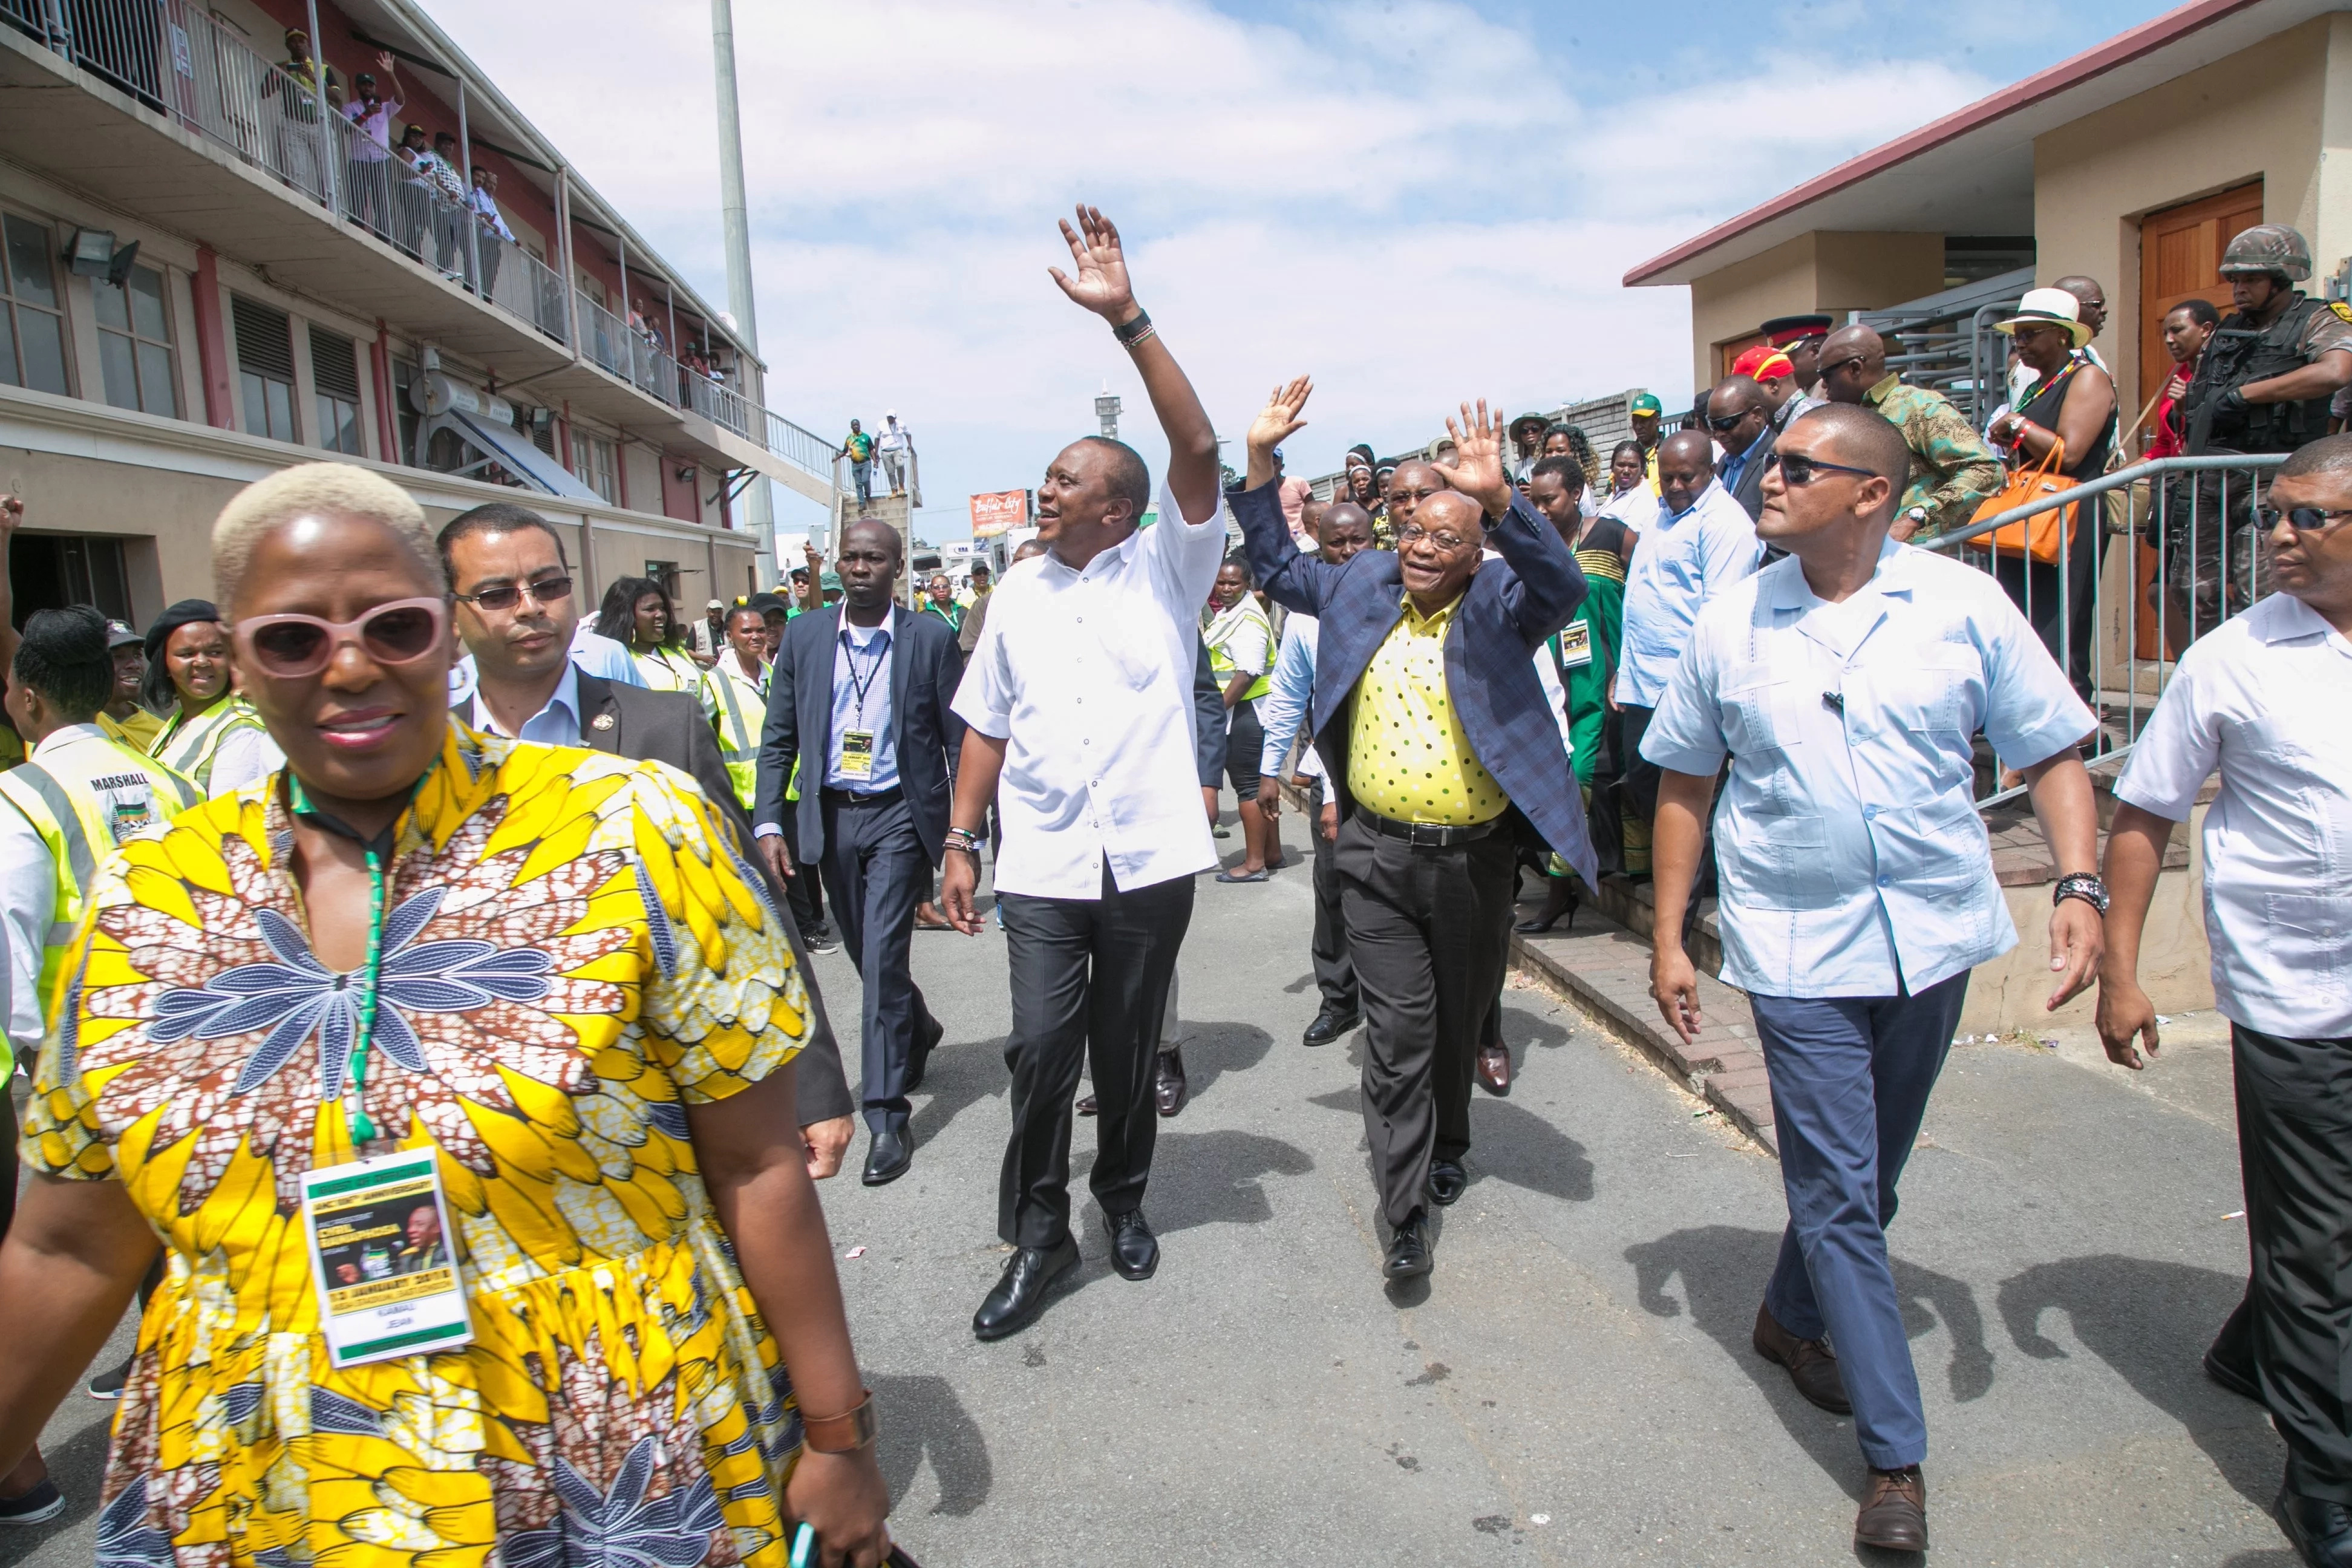 Kenyatta joins ANC leaders in celebrating their 106 birthday in Song and dance